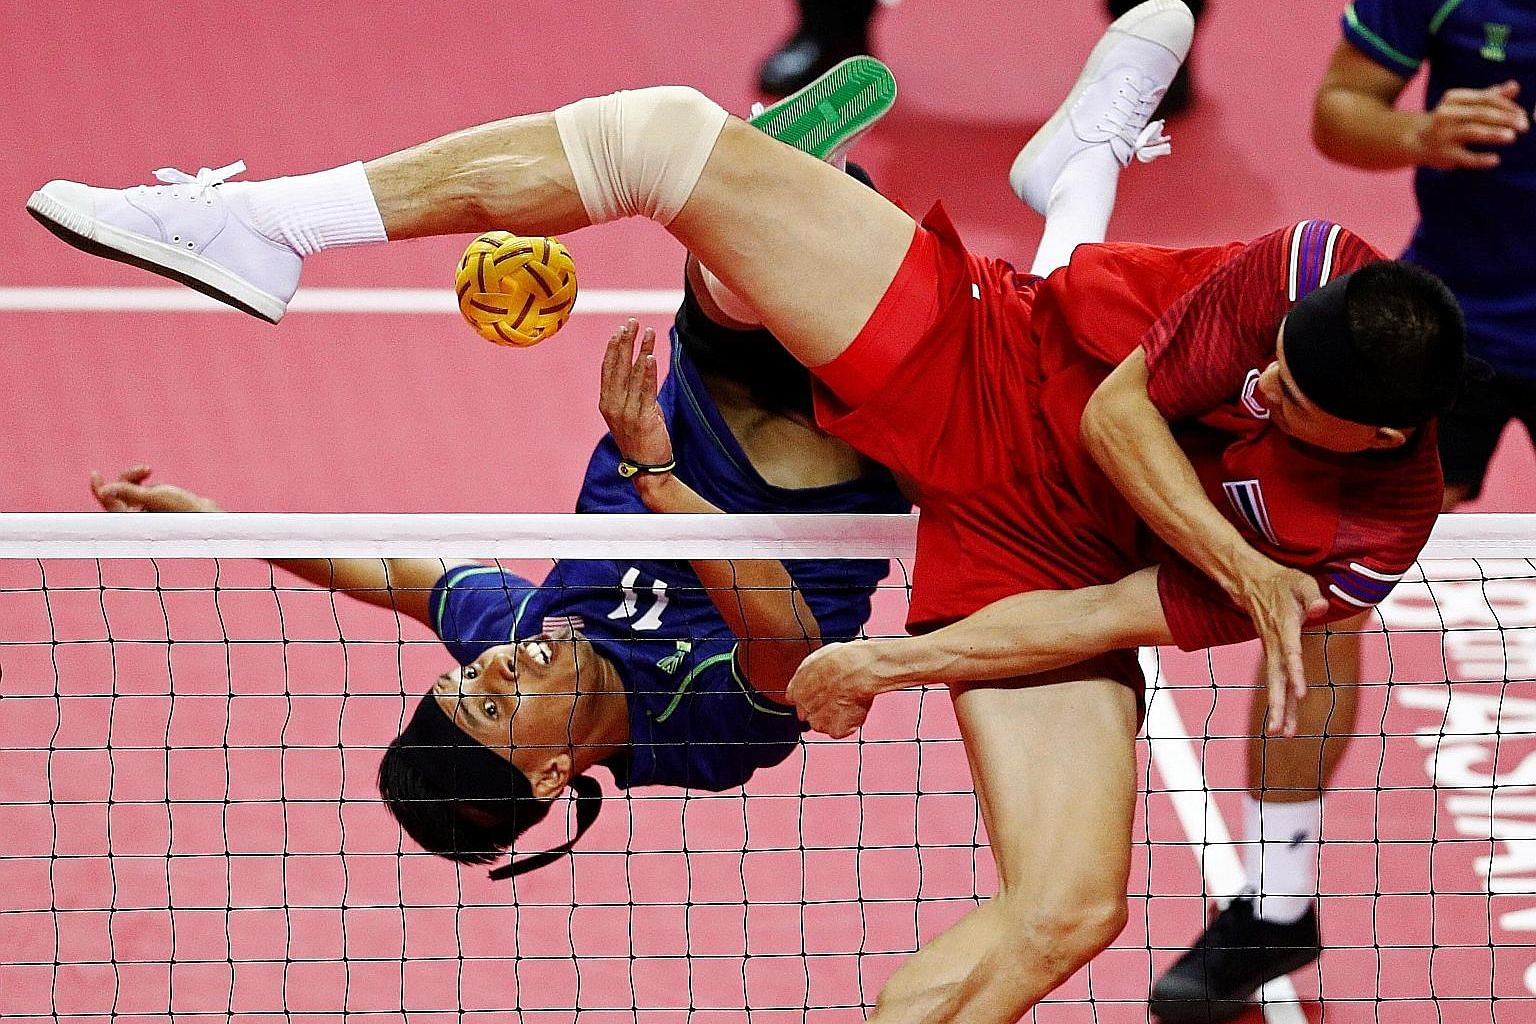 Muhamad Norhaffizi Abdul Razak of Malaysia and Anuwat Chaichana of Thailand (in red) battling it out in the men's regu gold-medal match yesterday. The Thais, the undisputed sepak takraw kingpins, added two more golds to their 22 from previous Asian G